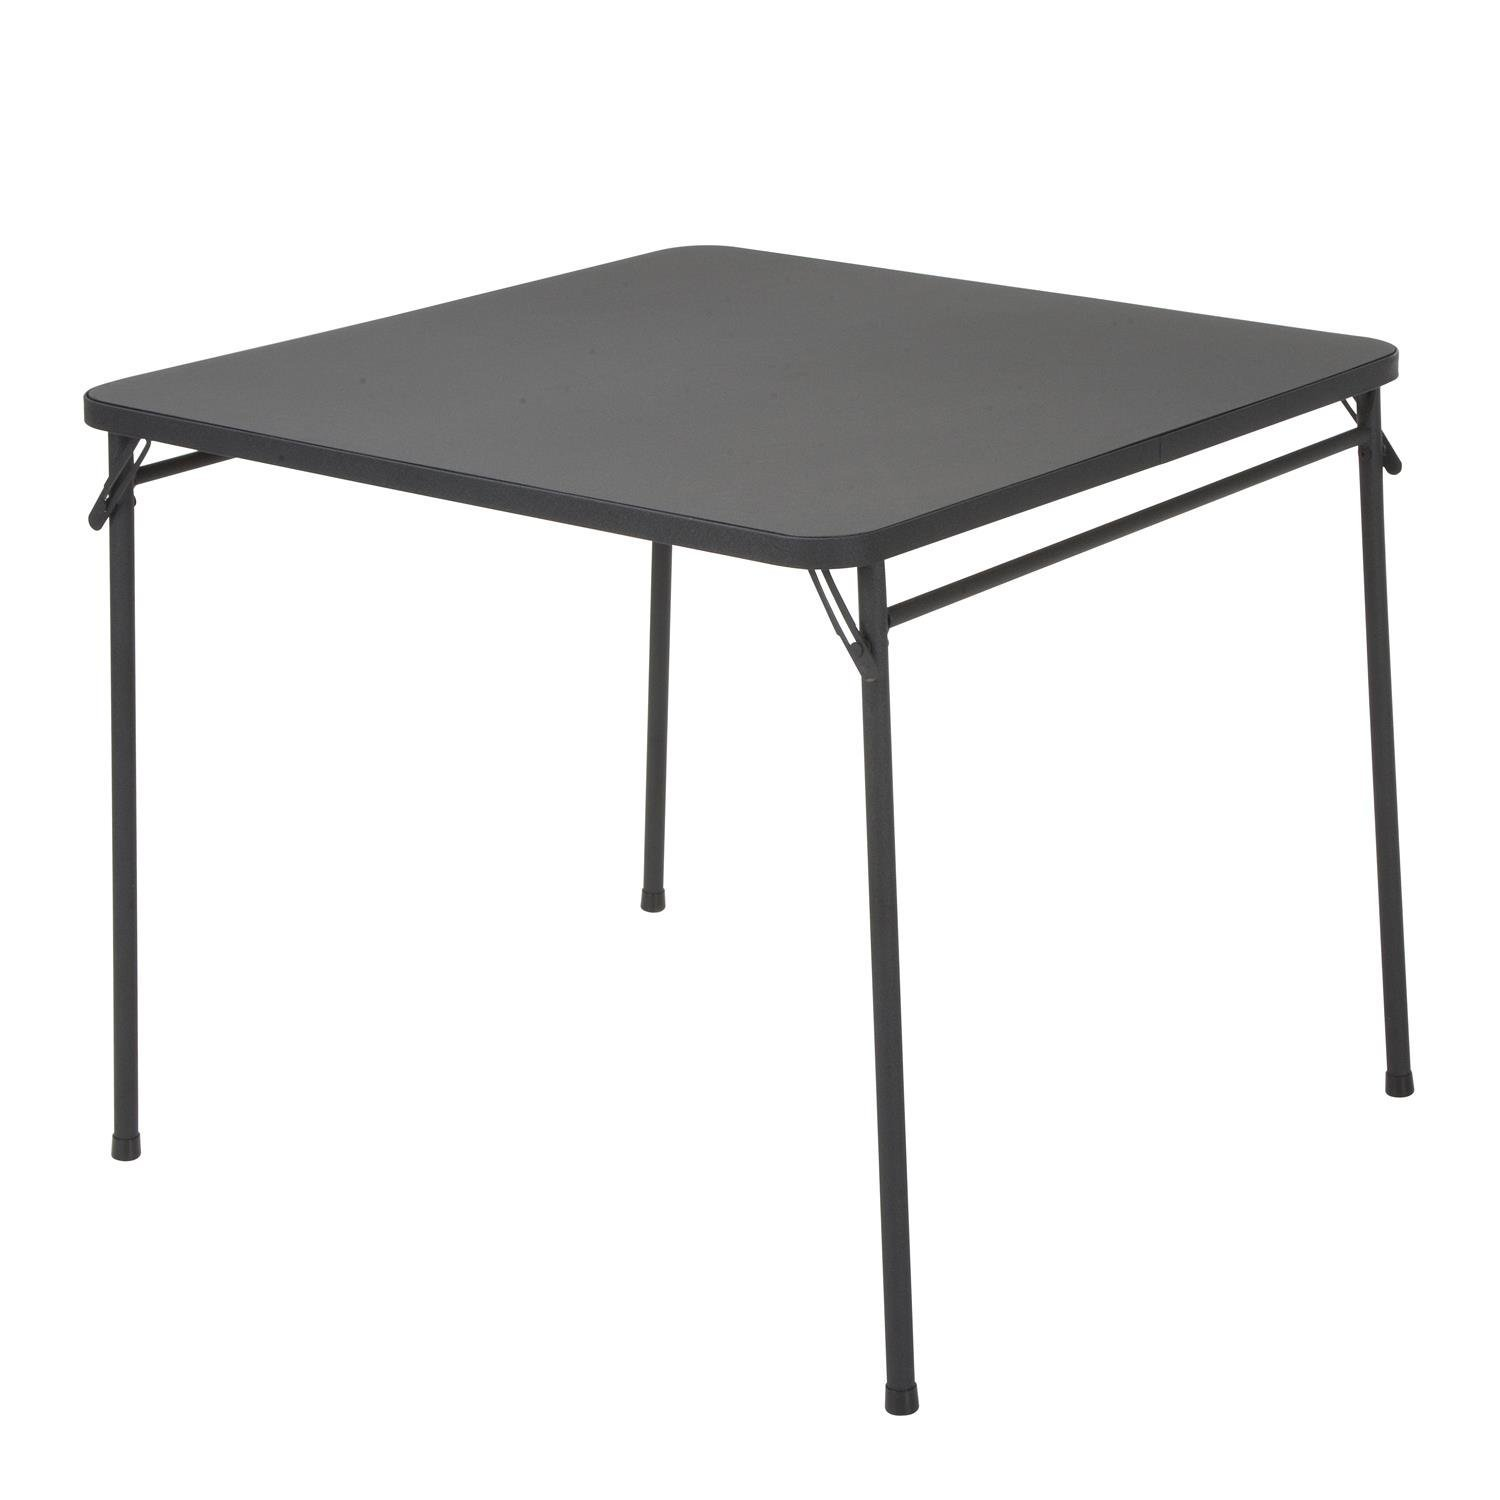 inch resin card table chairs for affairs outdoor side canadian tire linen napkins bulk plastic garden storage patio furniture covers nautical end tables cool lamps best drum